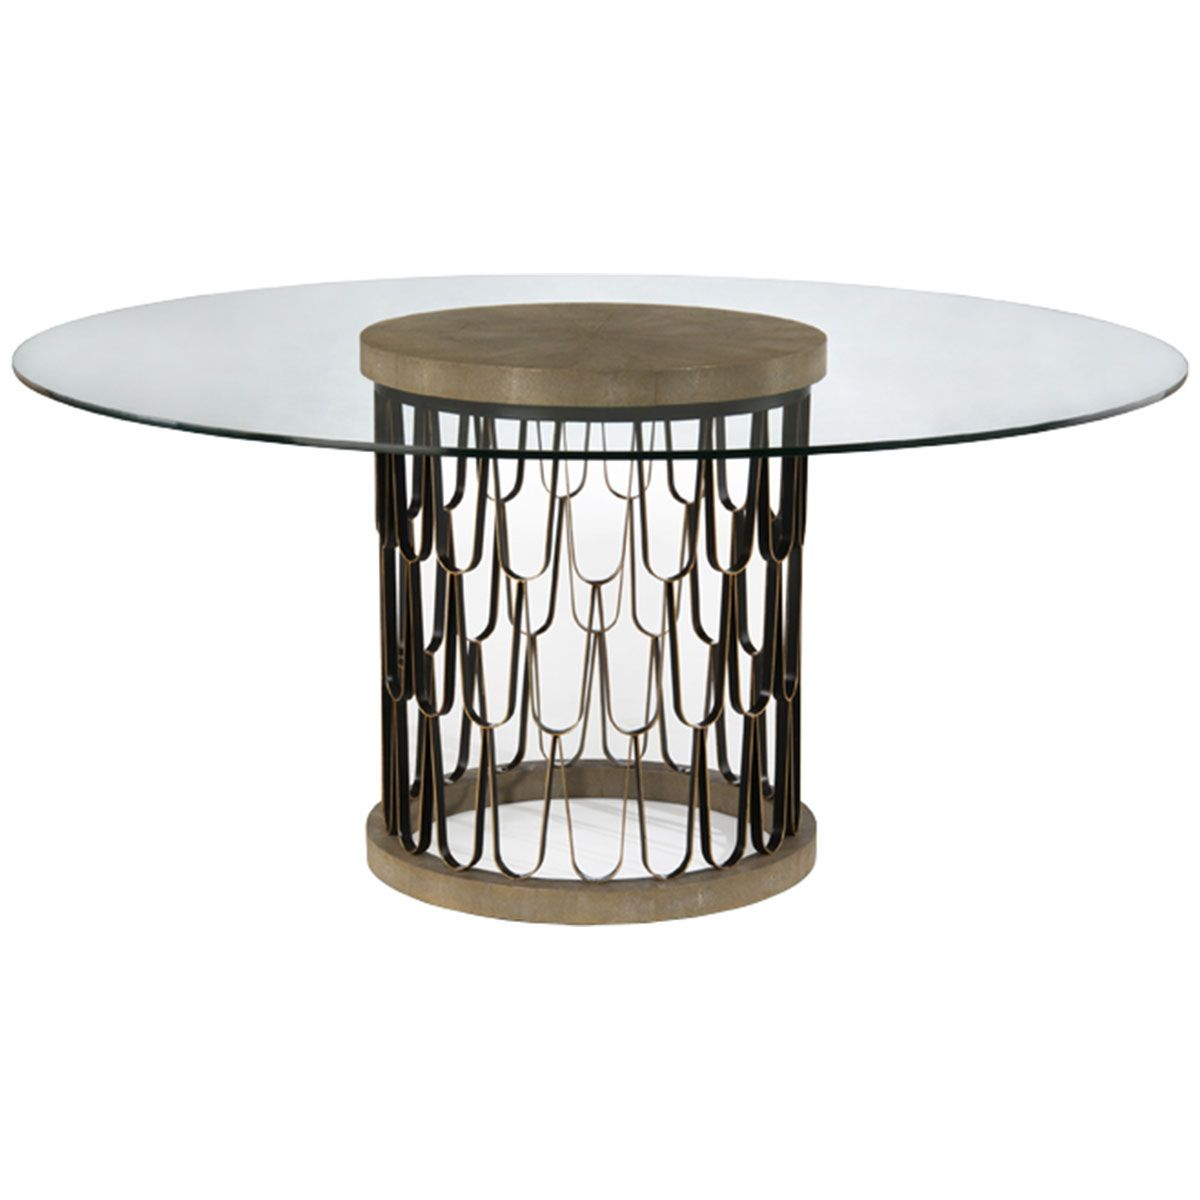 eur 10 0049 john richard dining dining table table rh pinterest com